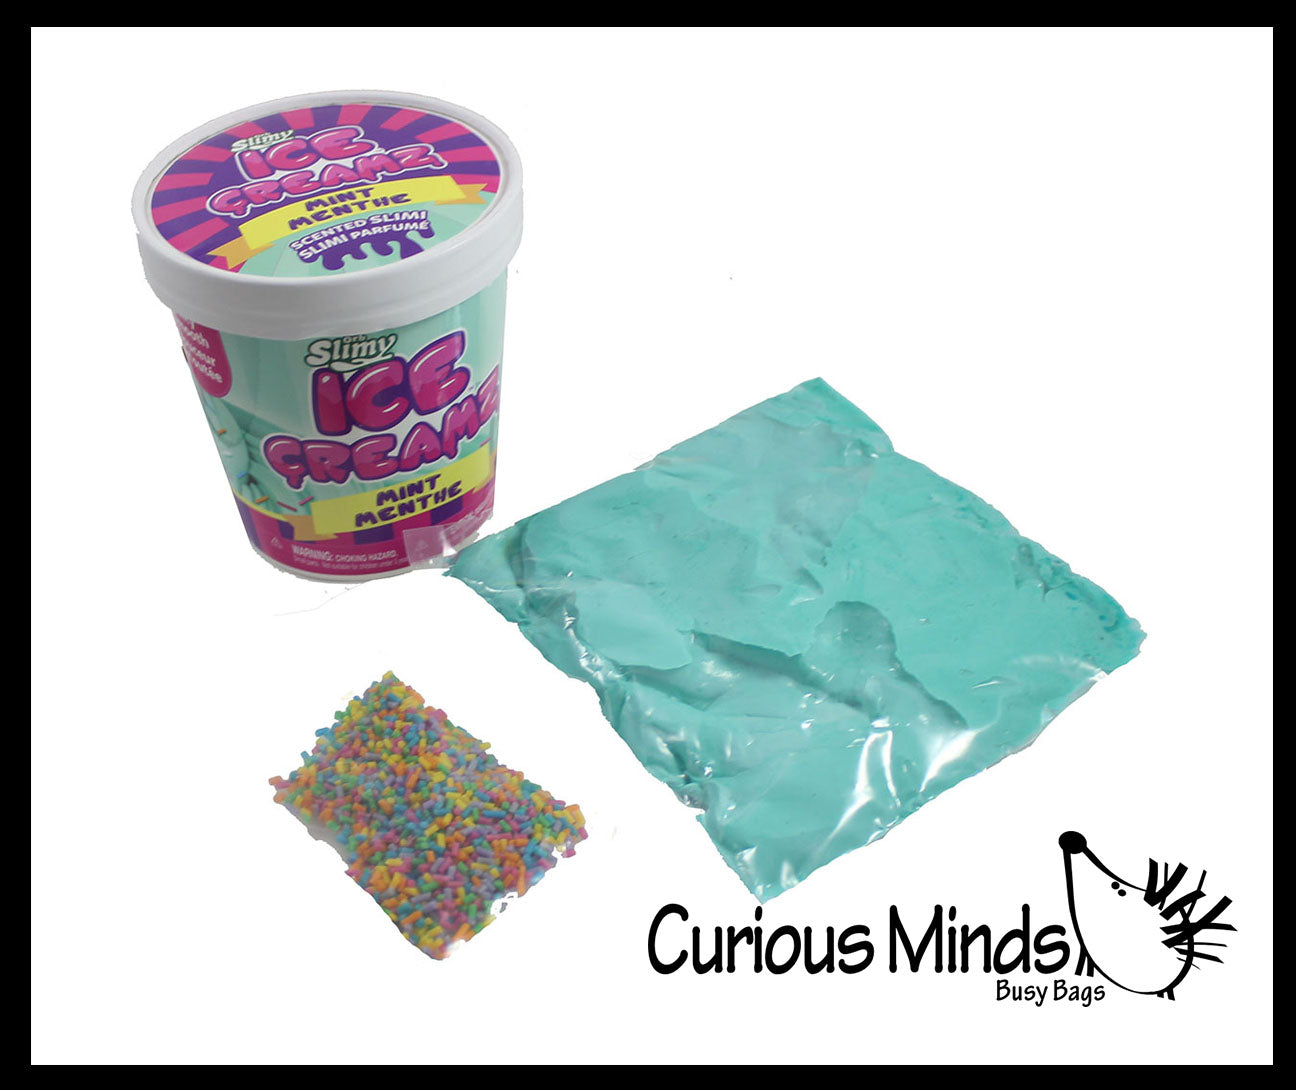 Orb Scented Ice Cream Container Slime - Ultra Soft and Buttery Slime Scented - Mix In Toppings - Putty - Goo